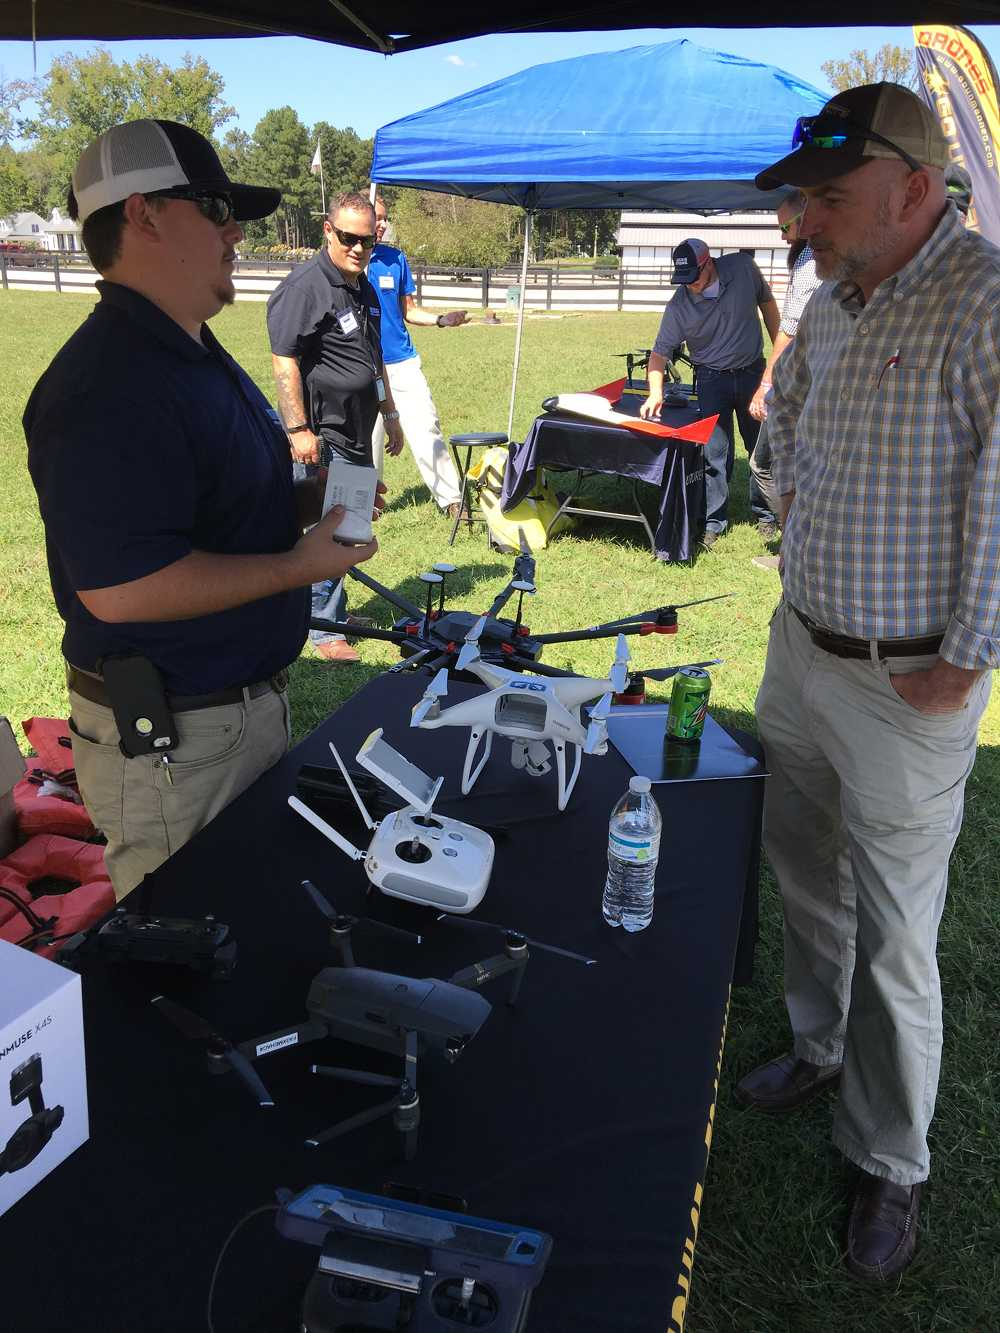 Mark Adams (L) talks with Tim Farley of Tim Farley Grading about the additional capabilities of the Phantom 4 Pro when paired with mapping software like DroneDeploy.